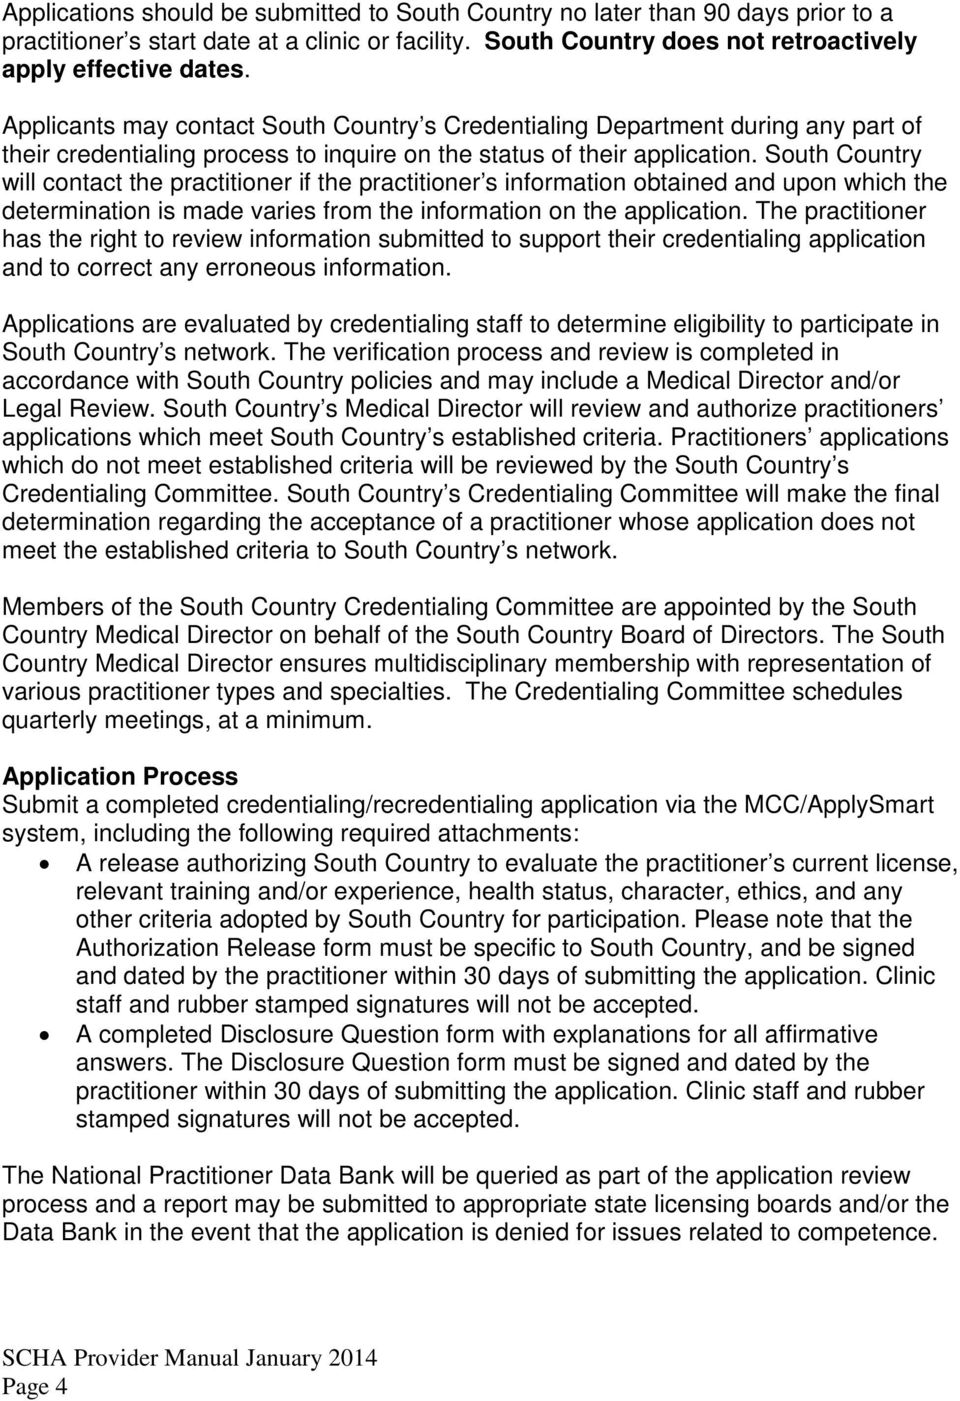 South Country will contact the practitioner if the practitioner s information obtained and upon which the determination is made varies from the information on the application.